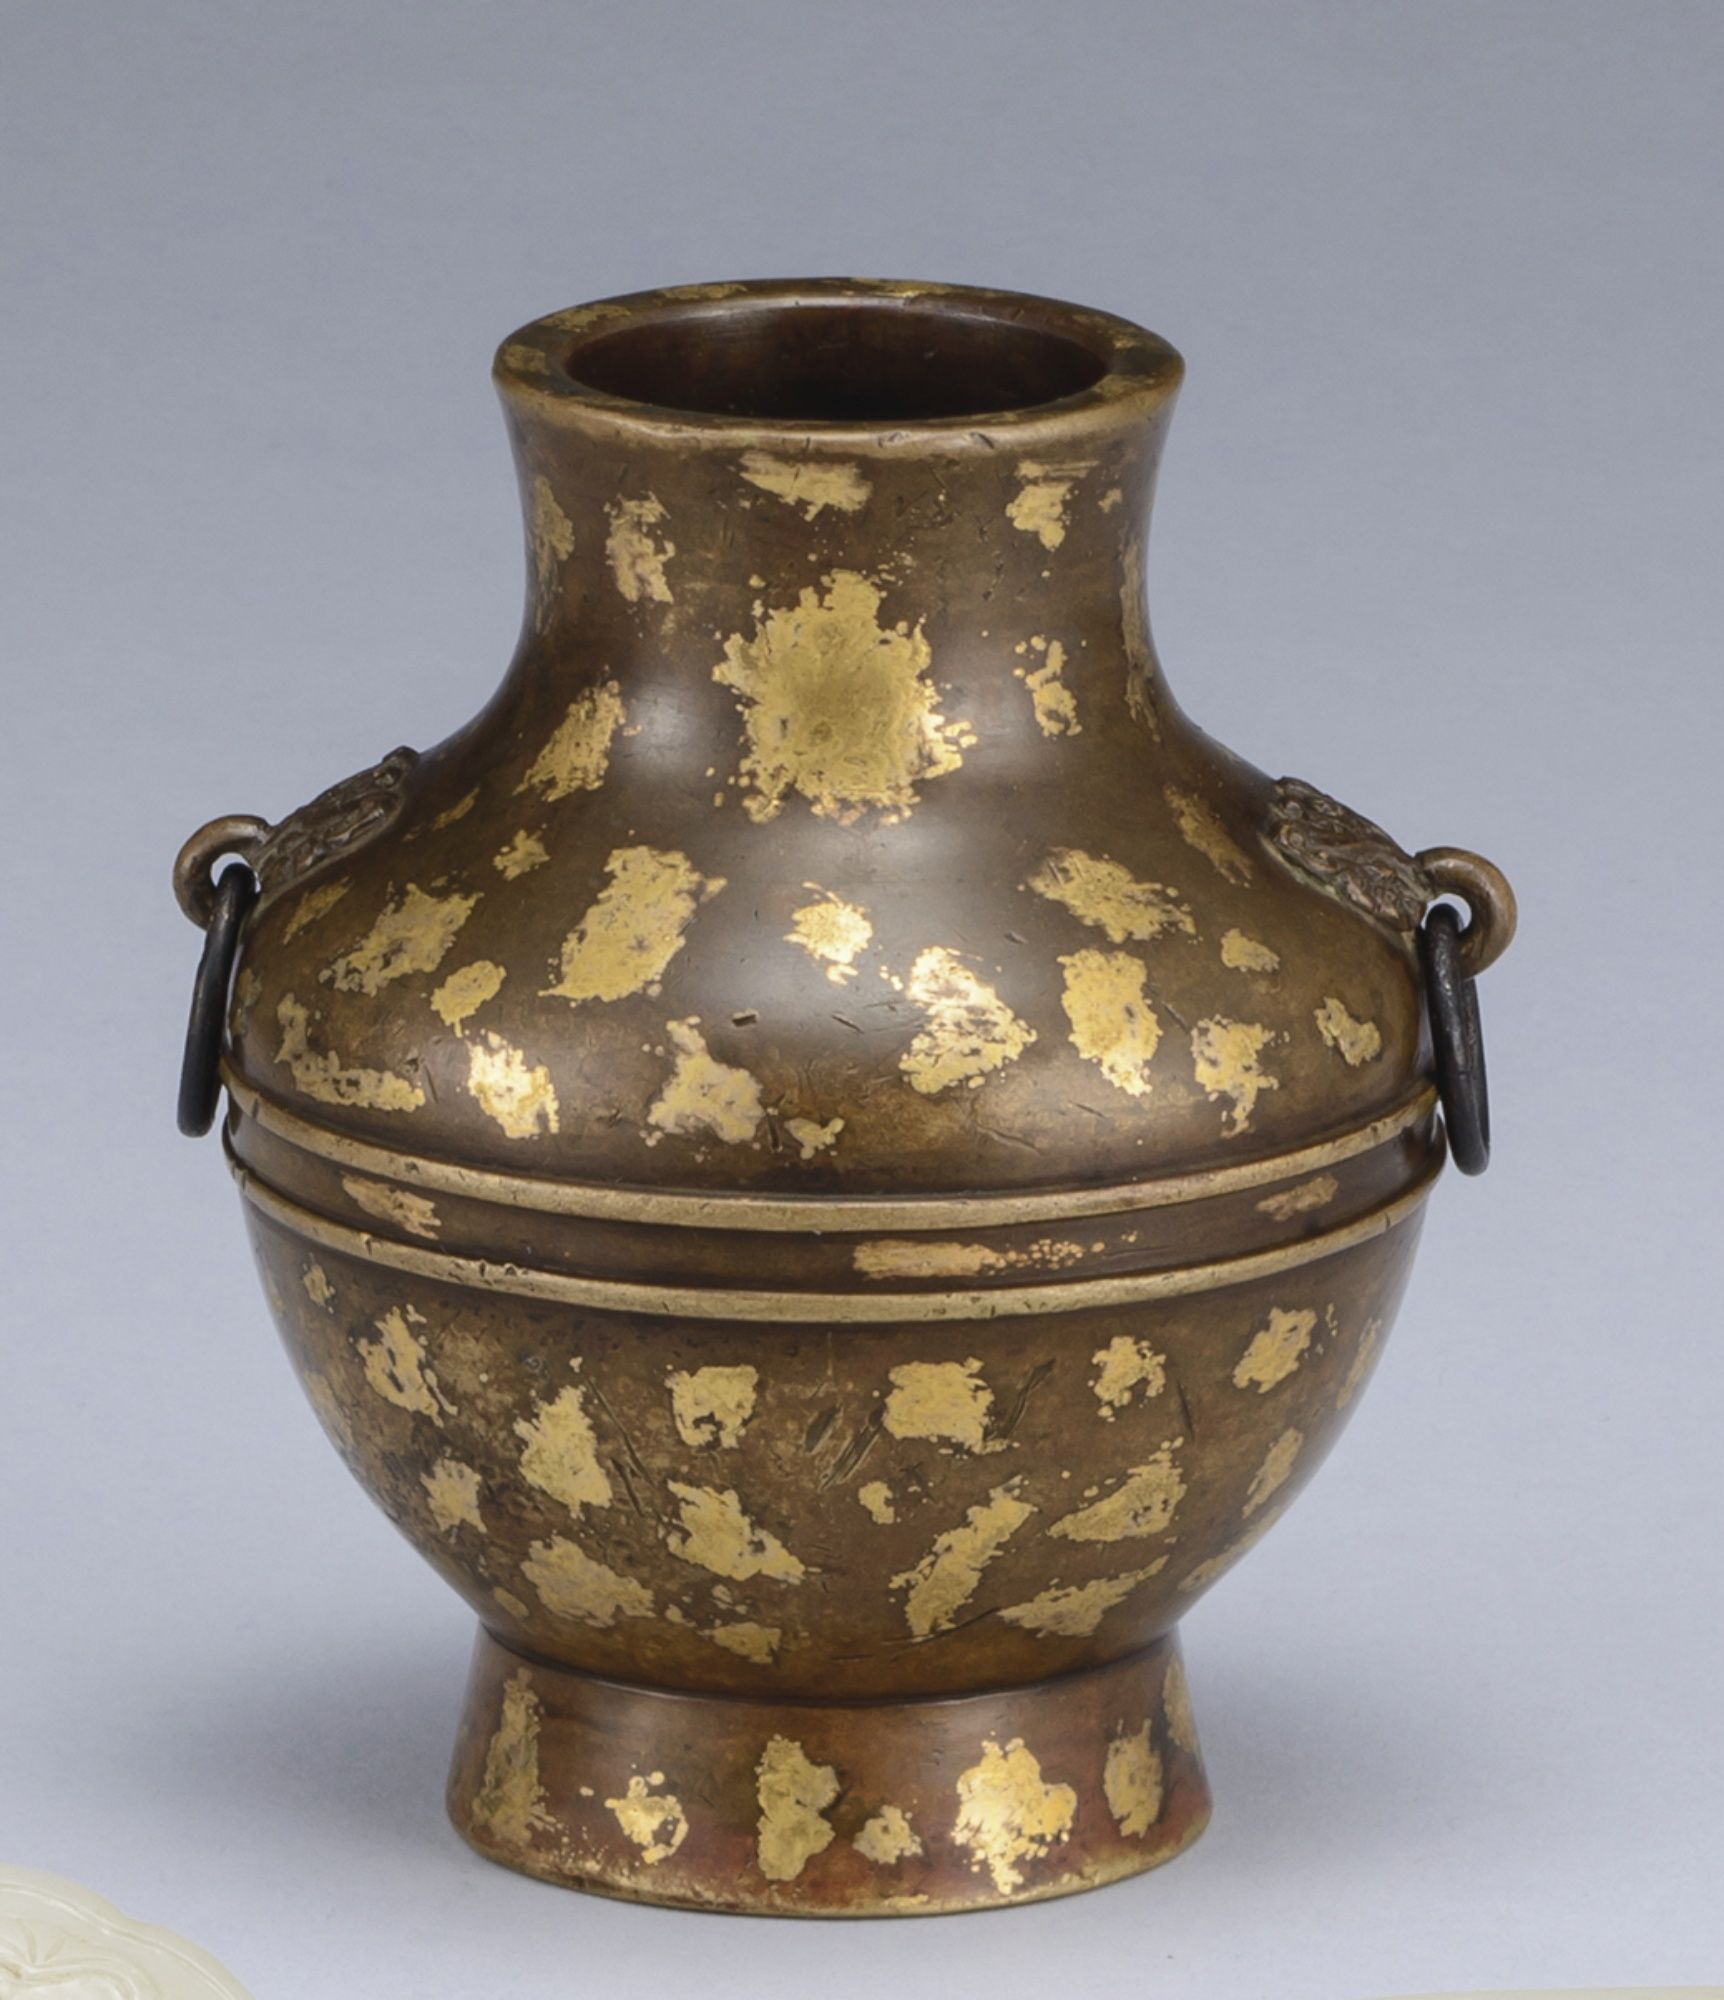 Lot | Sotheby's An Archaistic Gold-Splashed Bronze Censer, Hu Qing Dynasty, 17th / 18th Century.